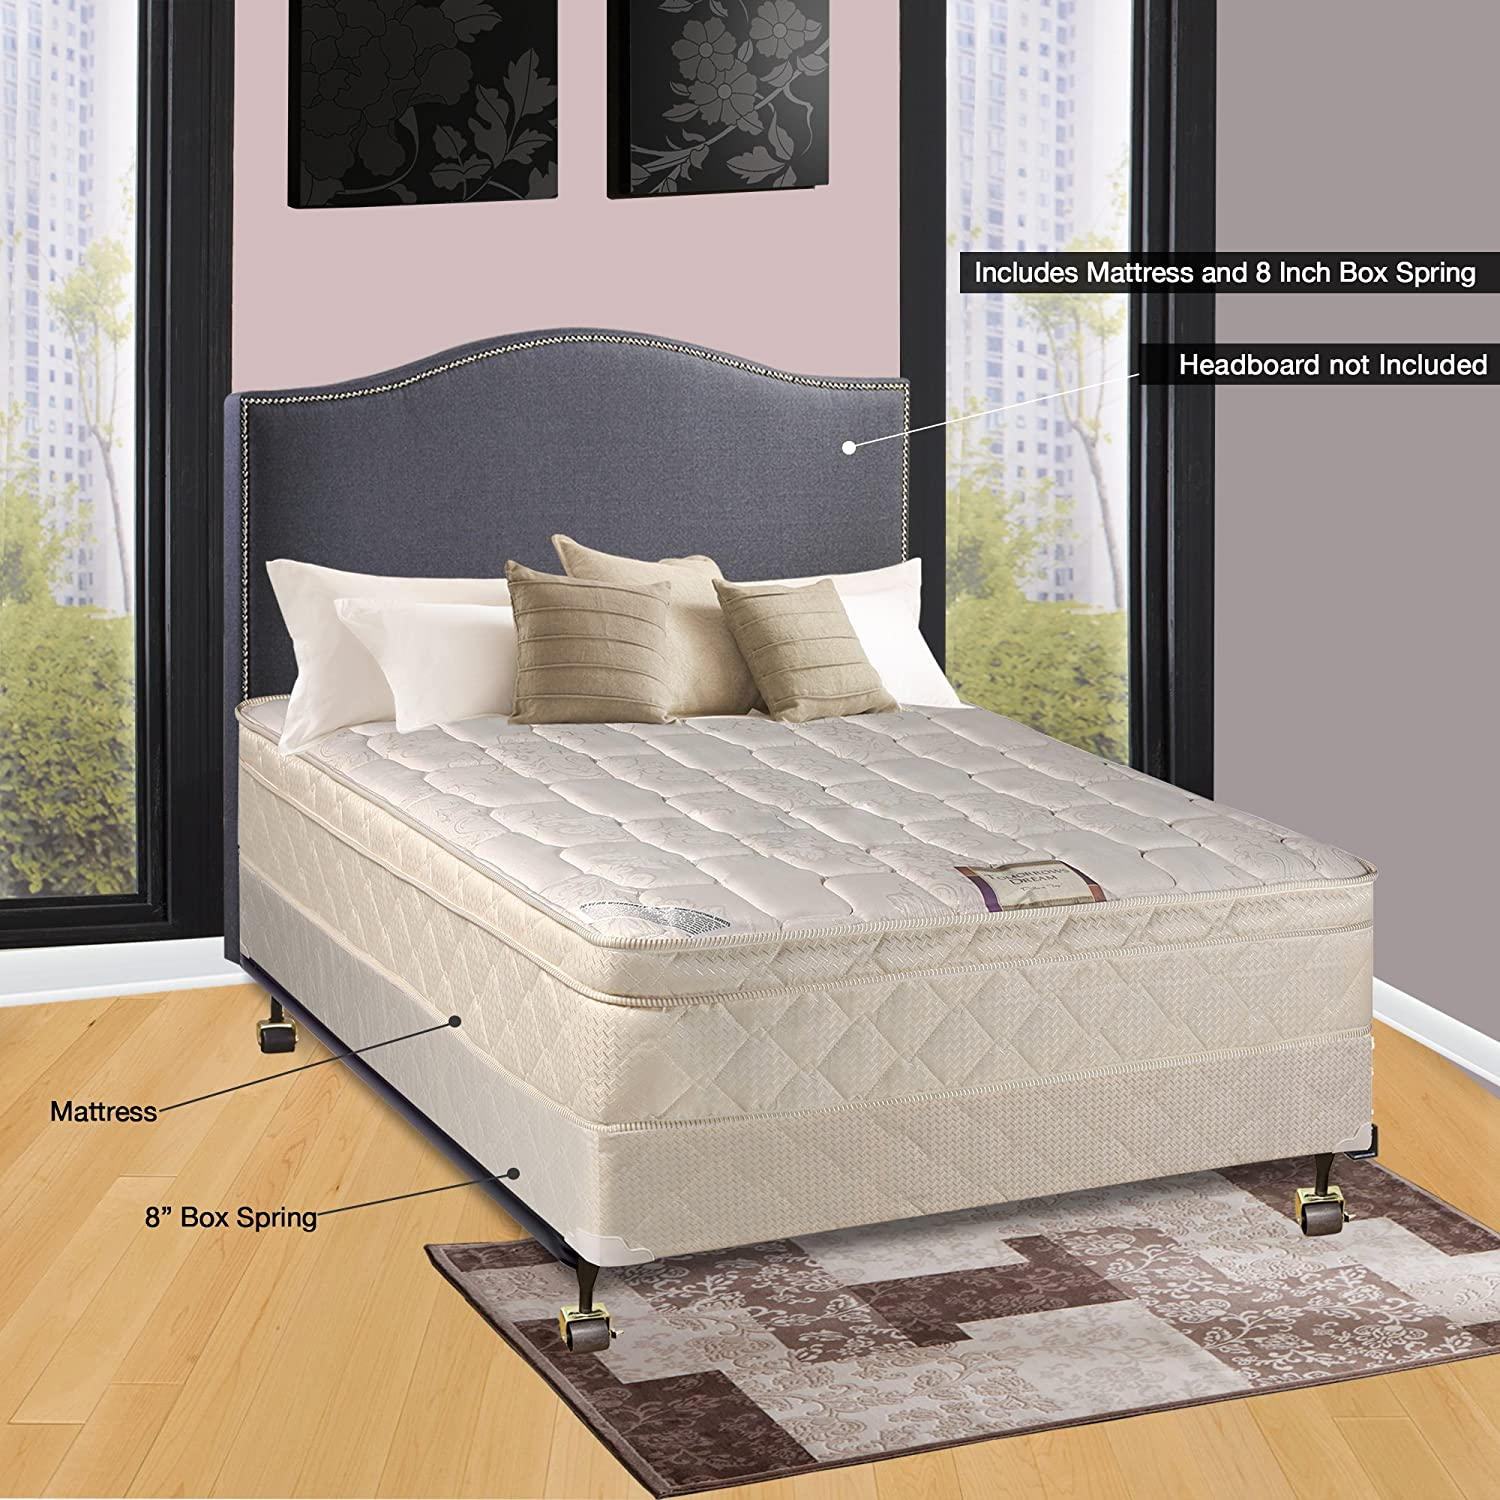 design queen perfect and for bed box mattress spring comfort bedroom considering size